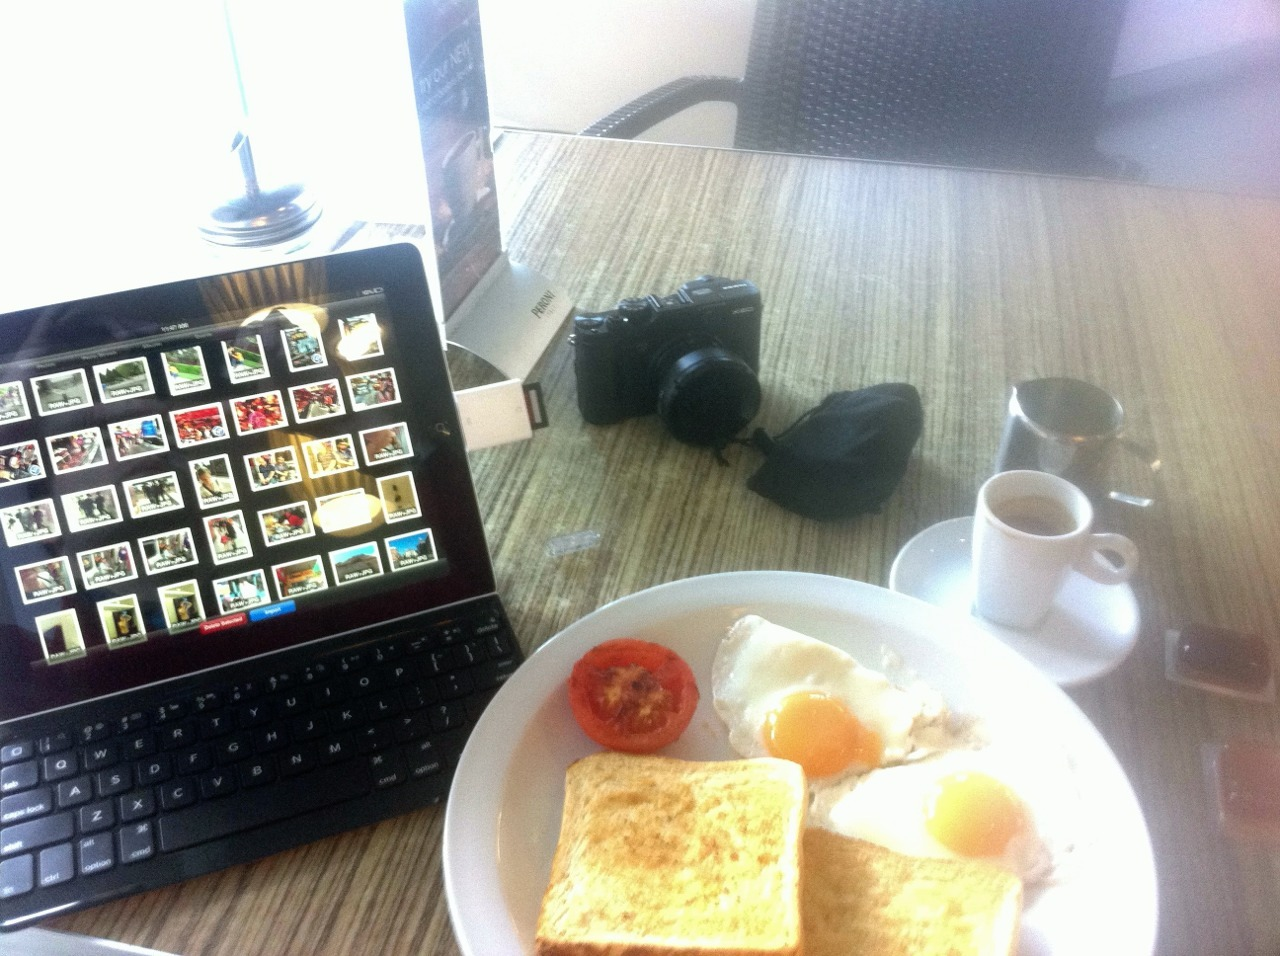 Breakfast with a side of editing.